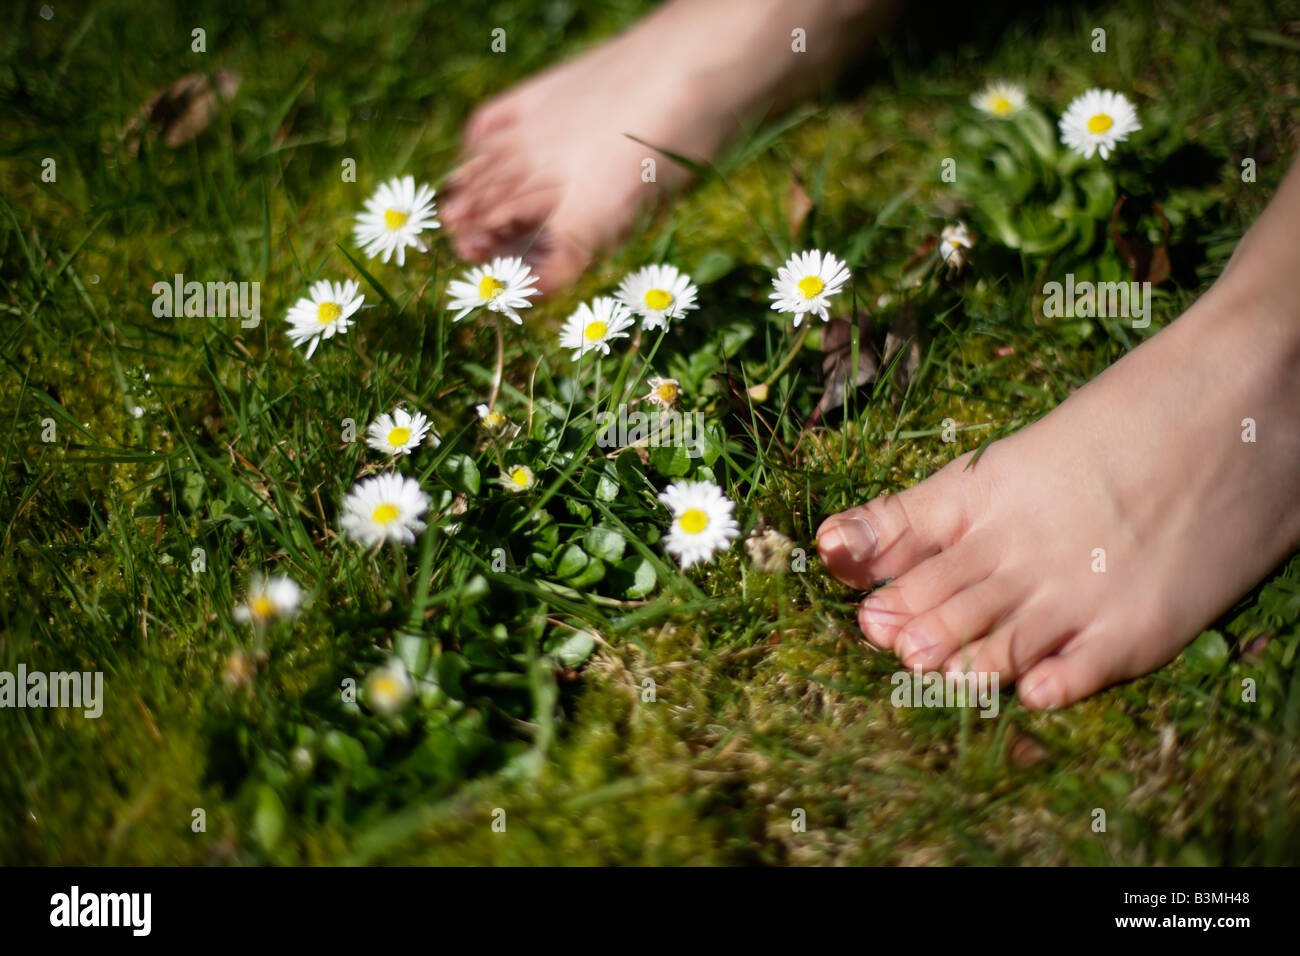 Six year old boy stands barefoot amongst daisies in lawn - Stock Image